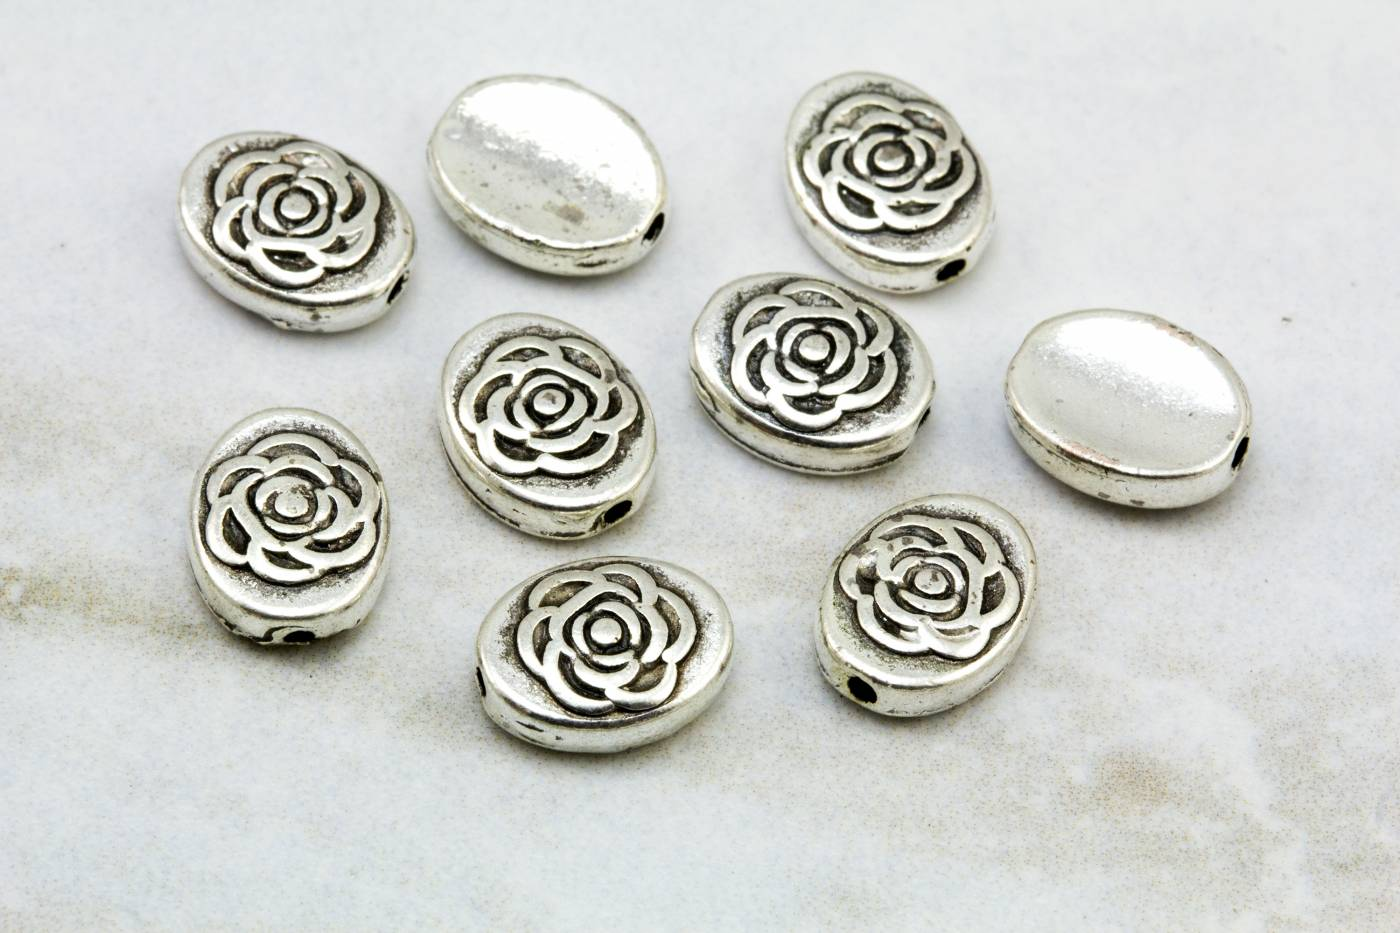 rose-pattern-jewelry-charms-metal-beads.jpg